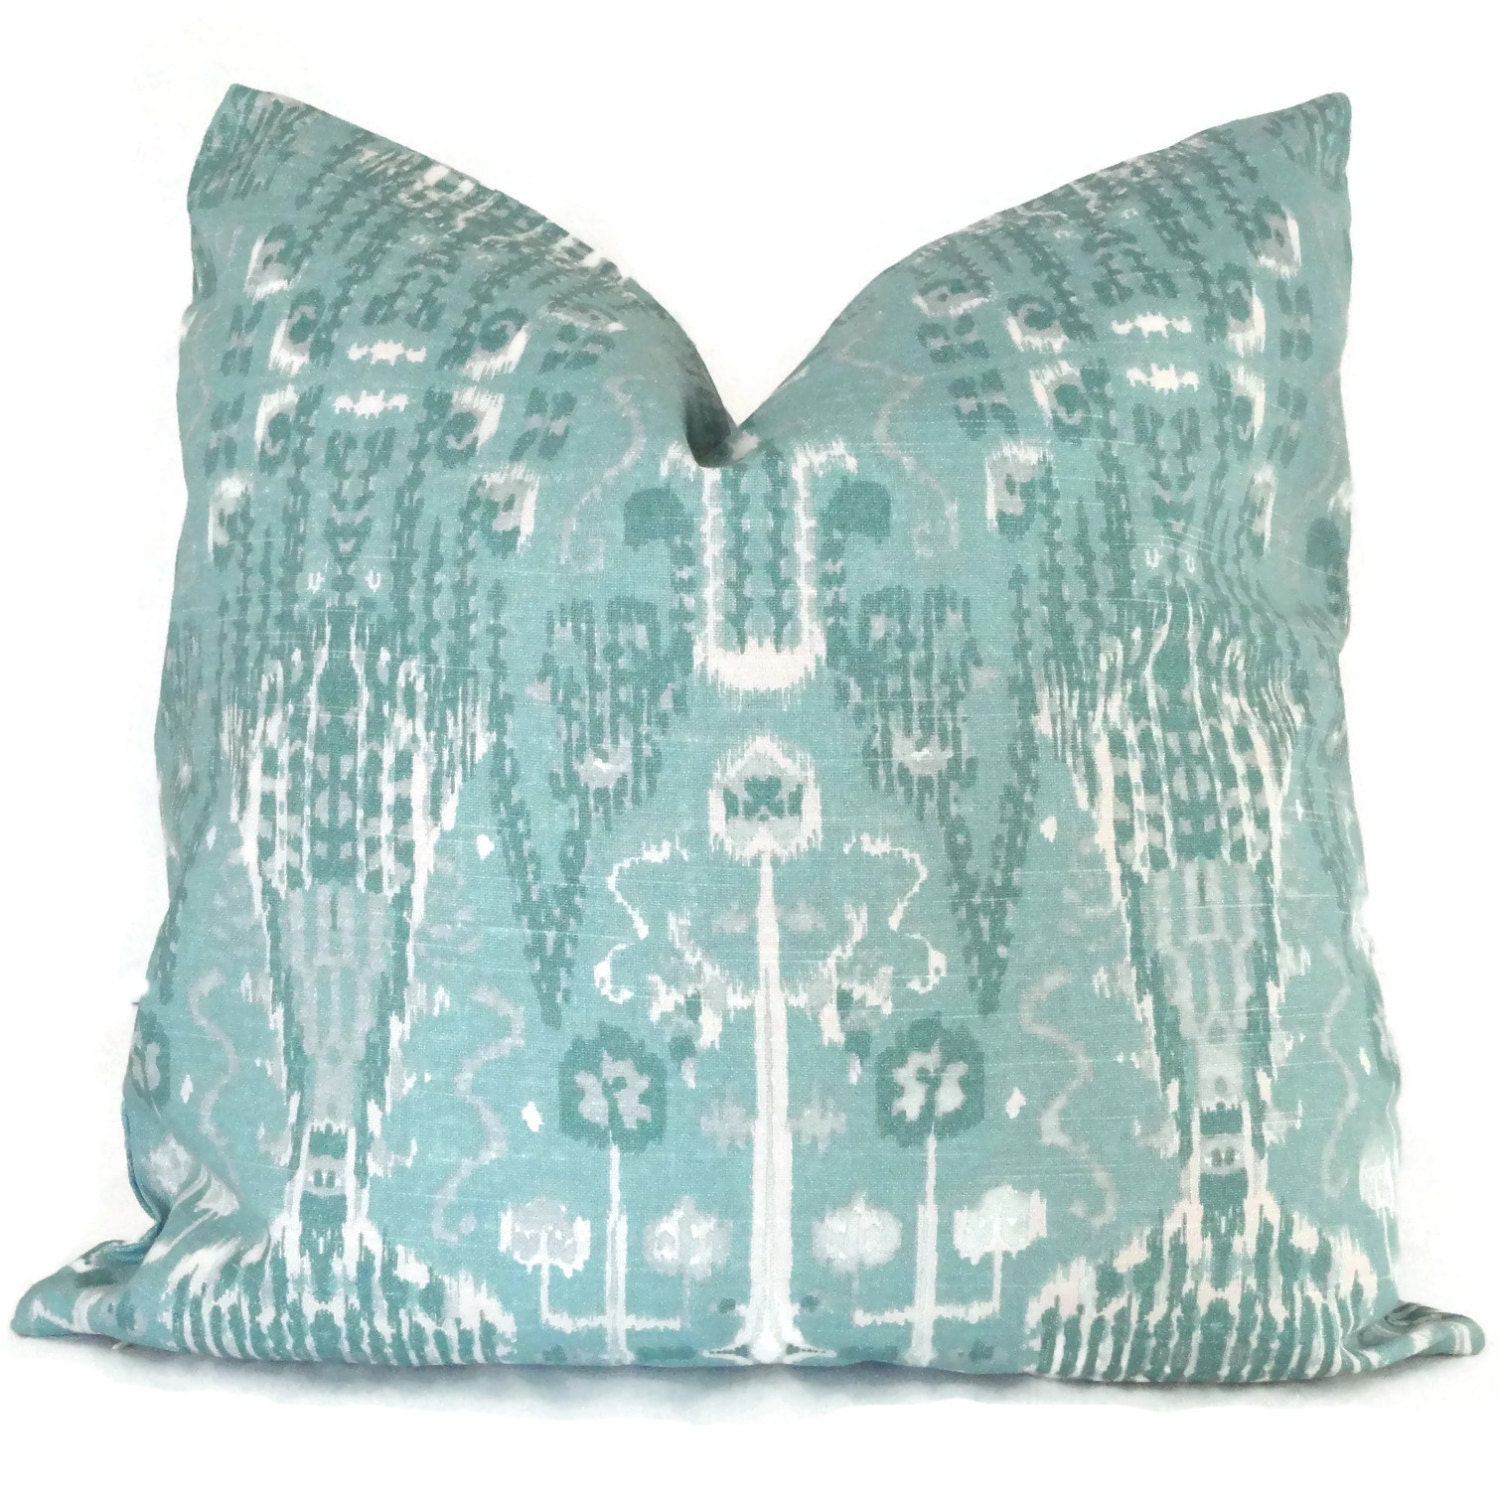 22x22 Decorative Pillows : Aqua Ikat Decorative Pillow Cover 18x18 20x20 22x22 or